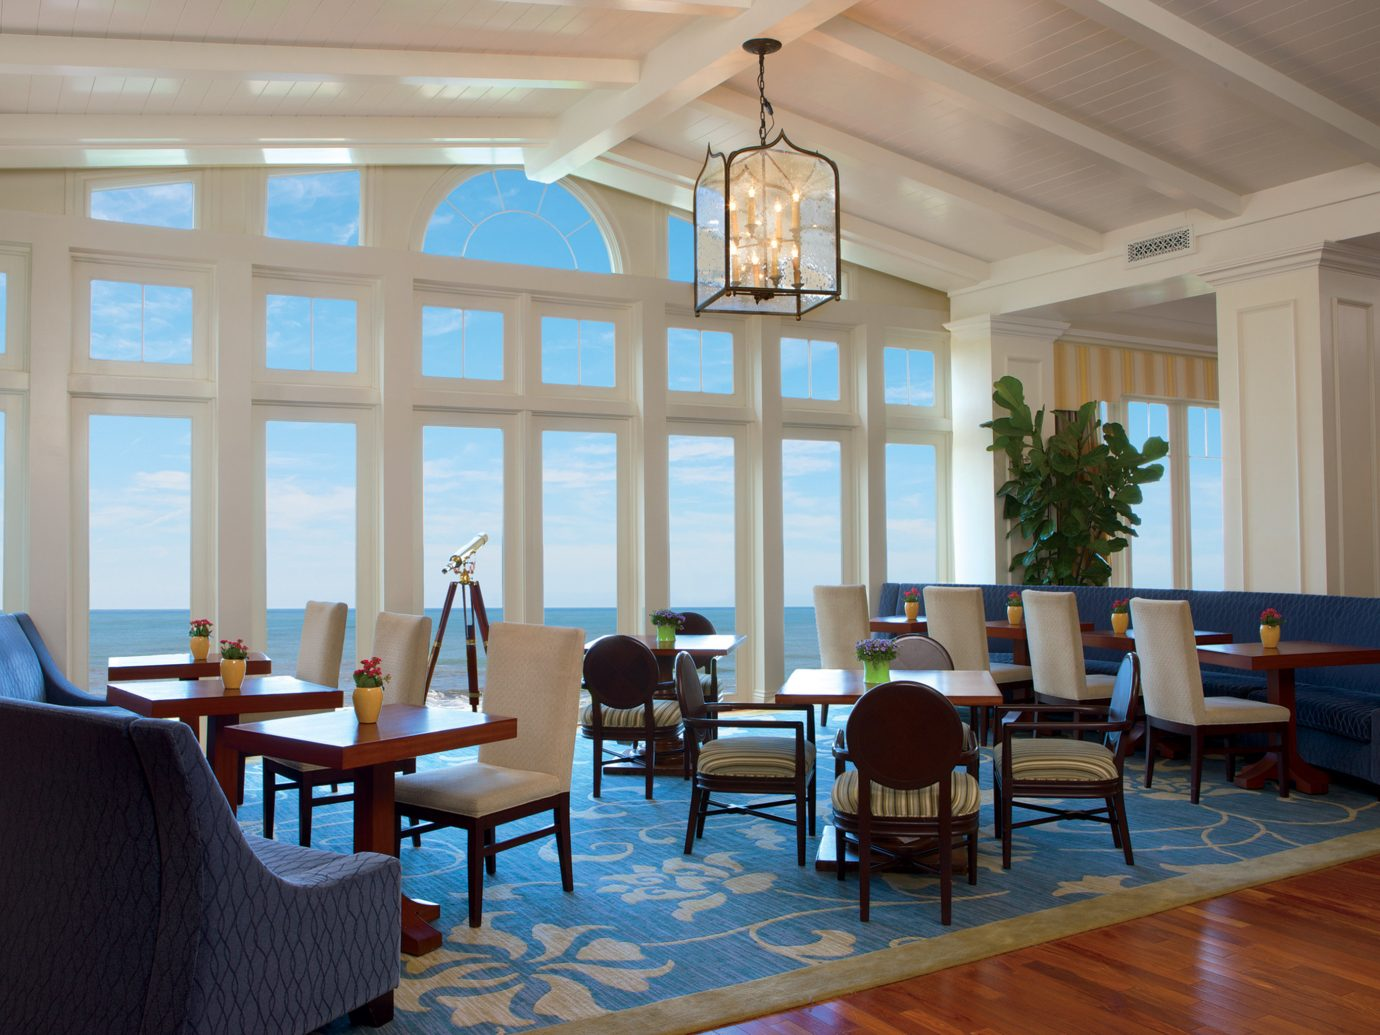 Bar Dining Drink Eat Hotels Scenic views indoor floor room window chair wall ceiling property Living dining room conference hall estate interior design home real estate restaurant function hall Design Lobby living room Resort window covering furniture area several